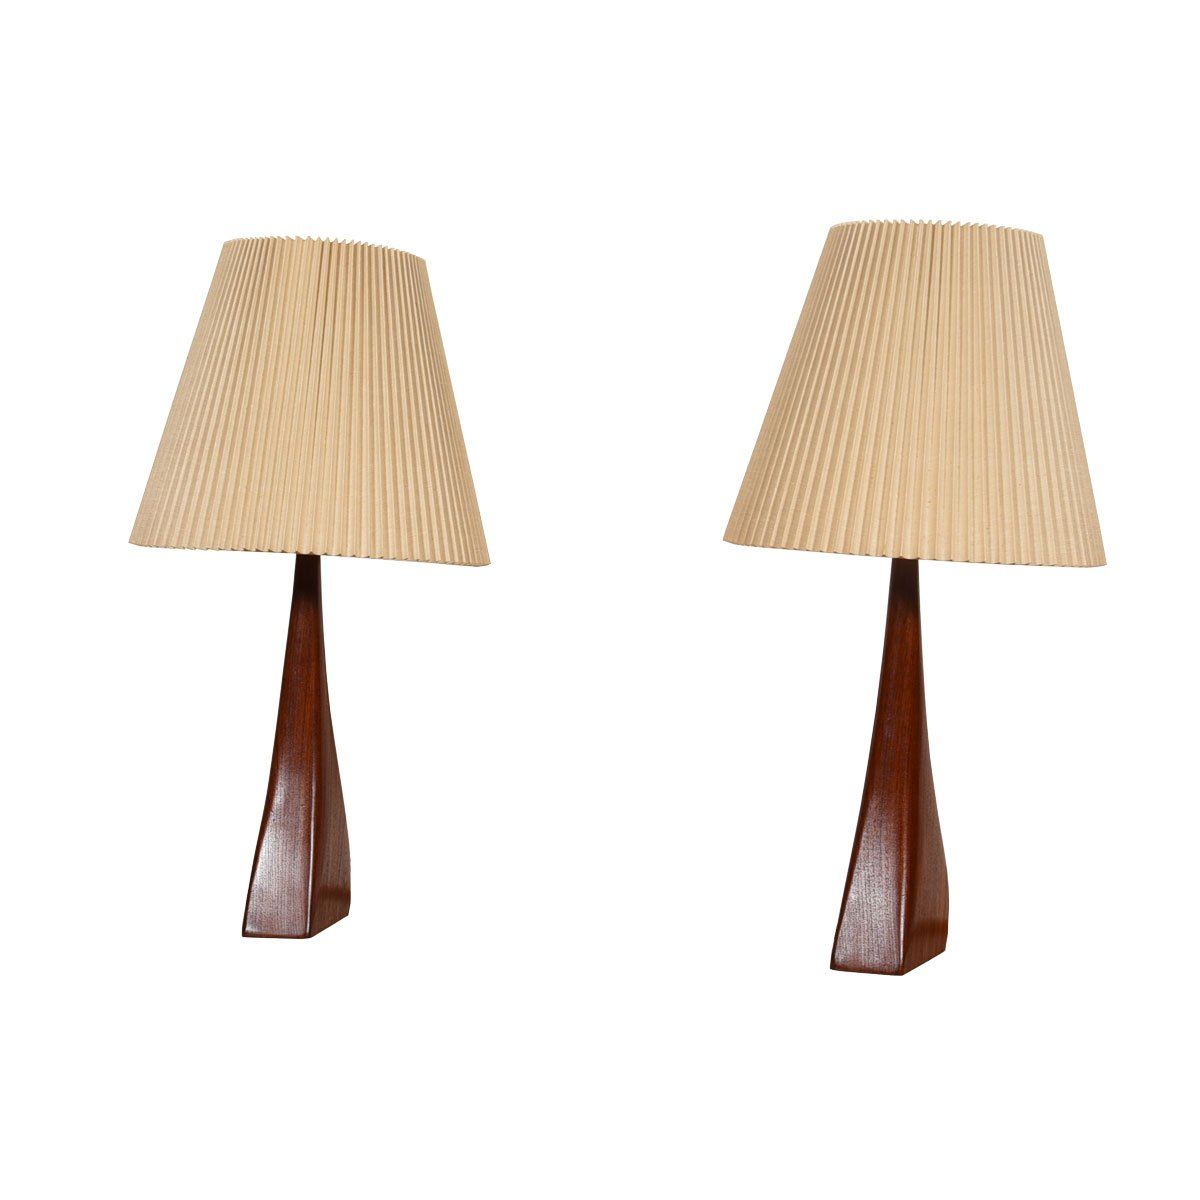 Rare Pair of Teak Lamps by Johannes Aasbjerg, Denmark